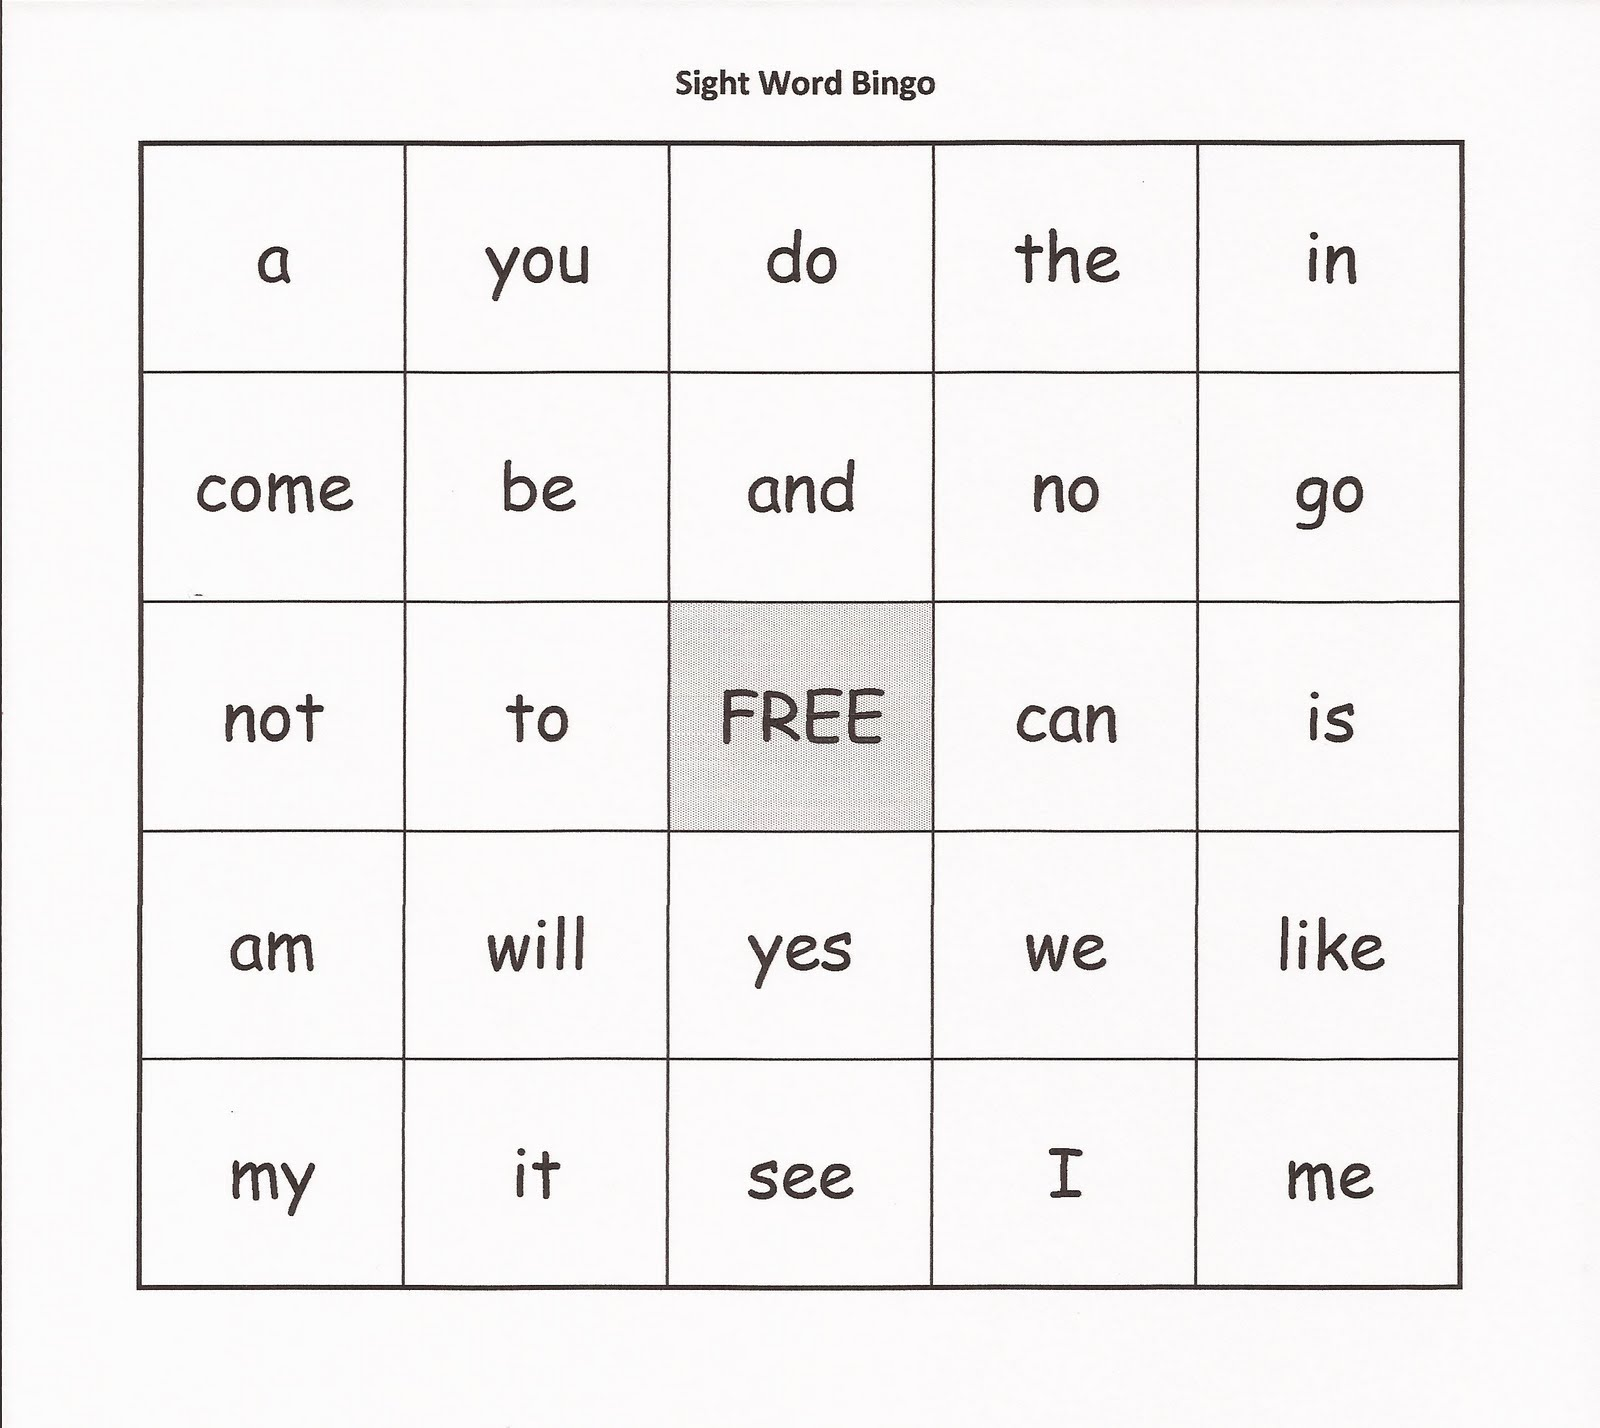 Word 1  Bingo word sight year Sight activities